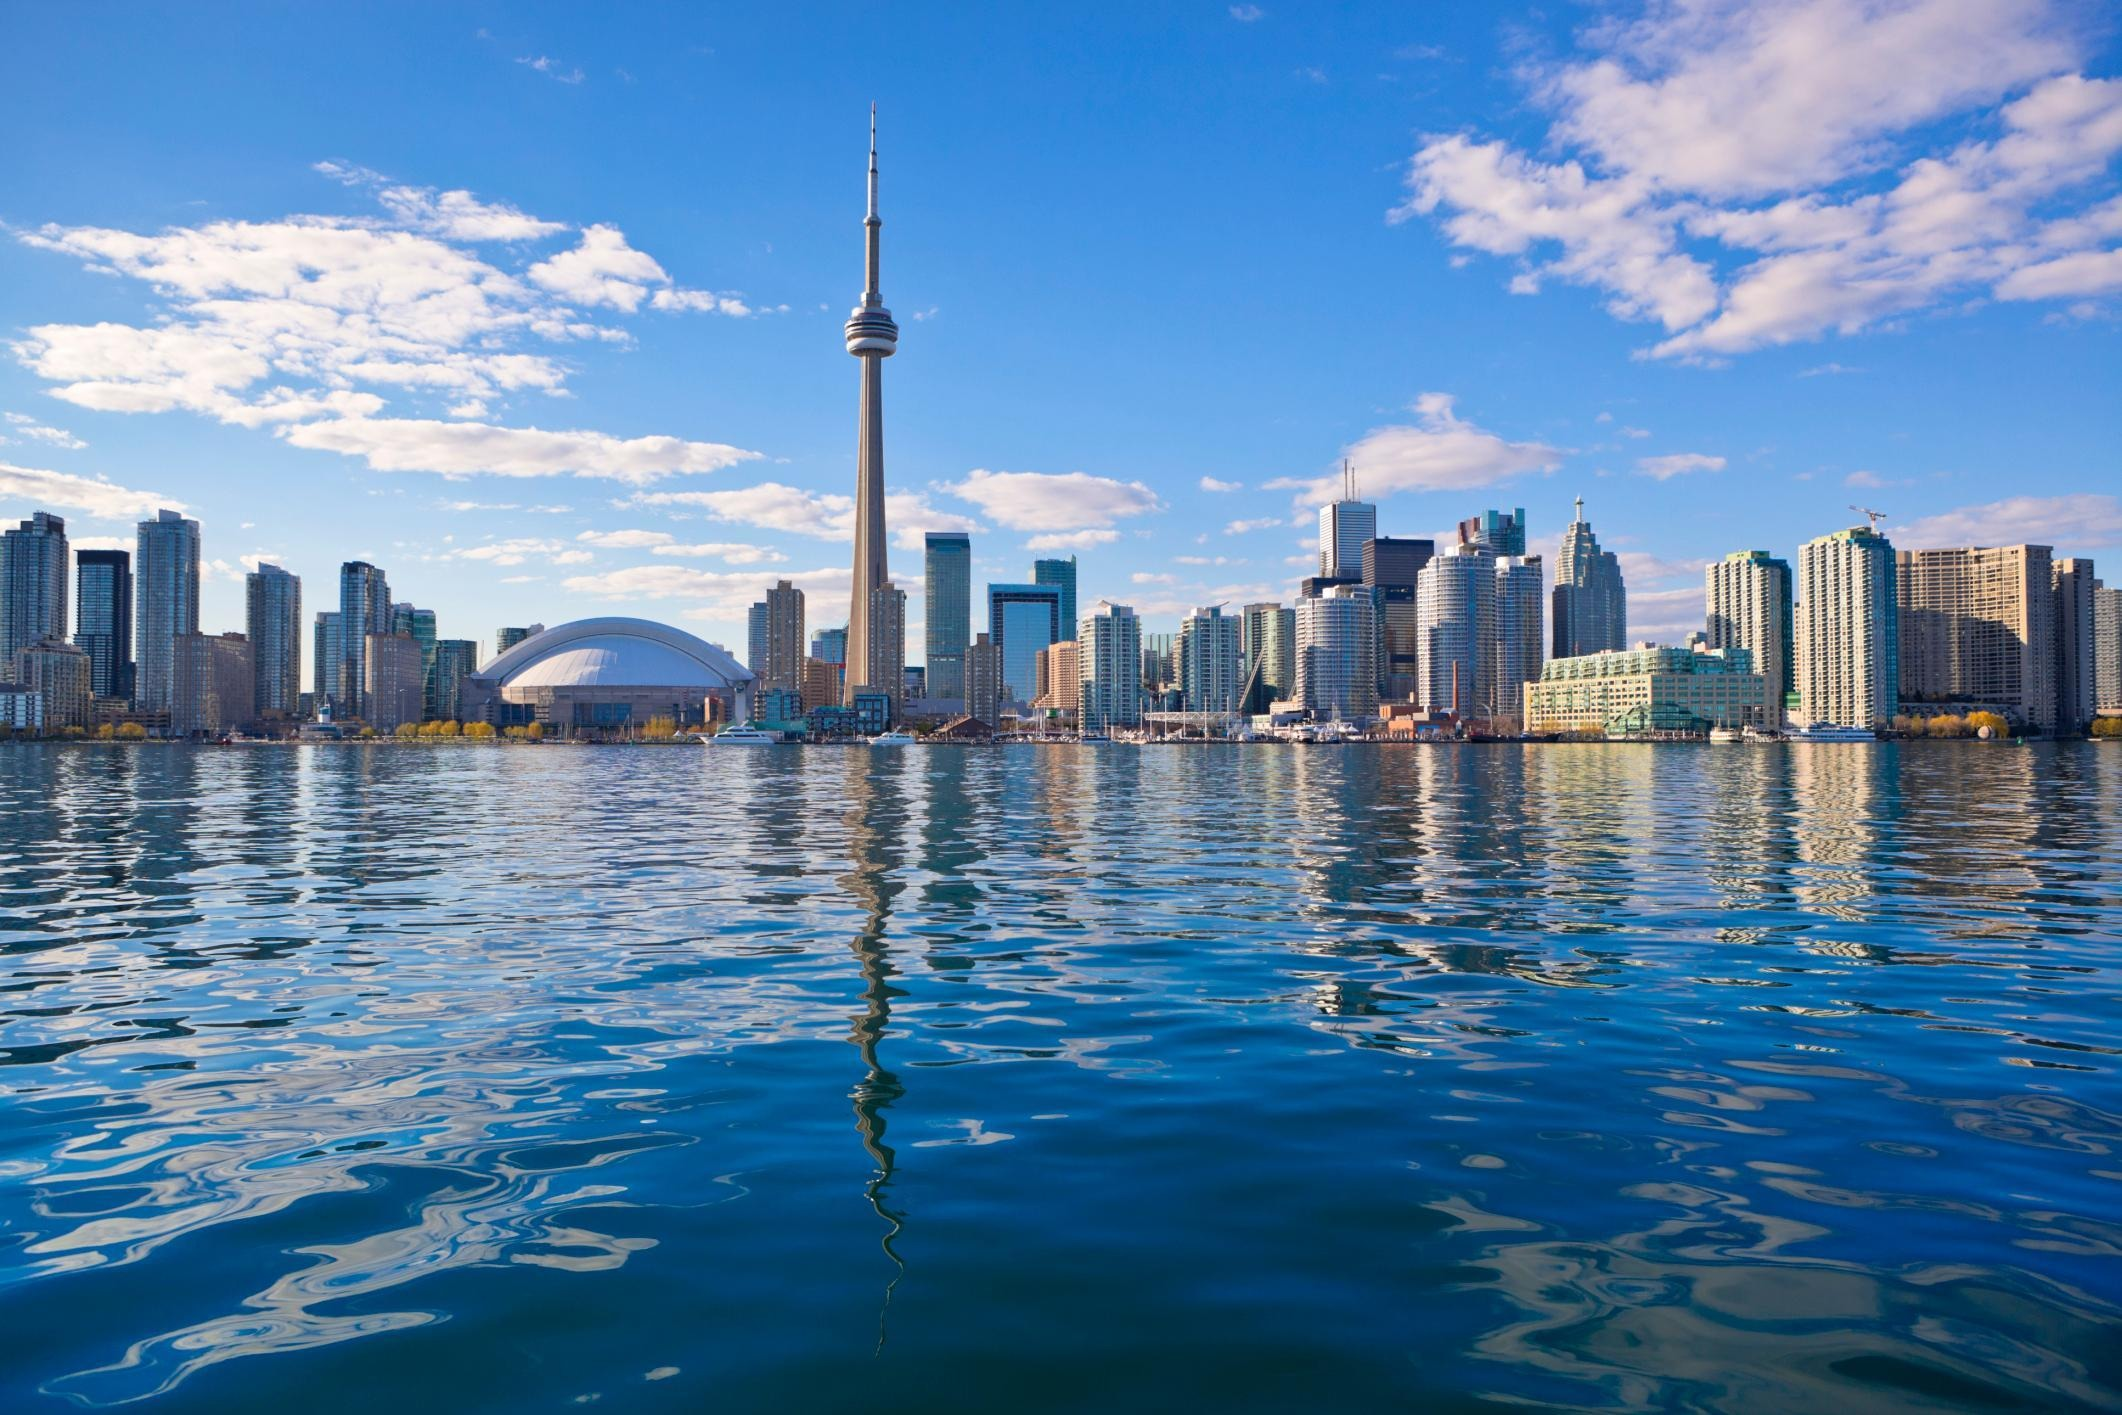 How to Spend 3 Days in Toronto